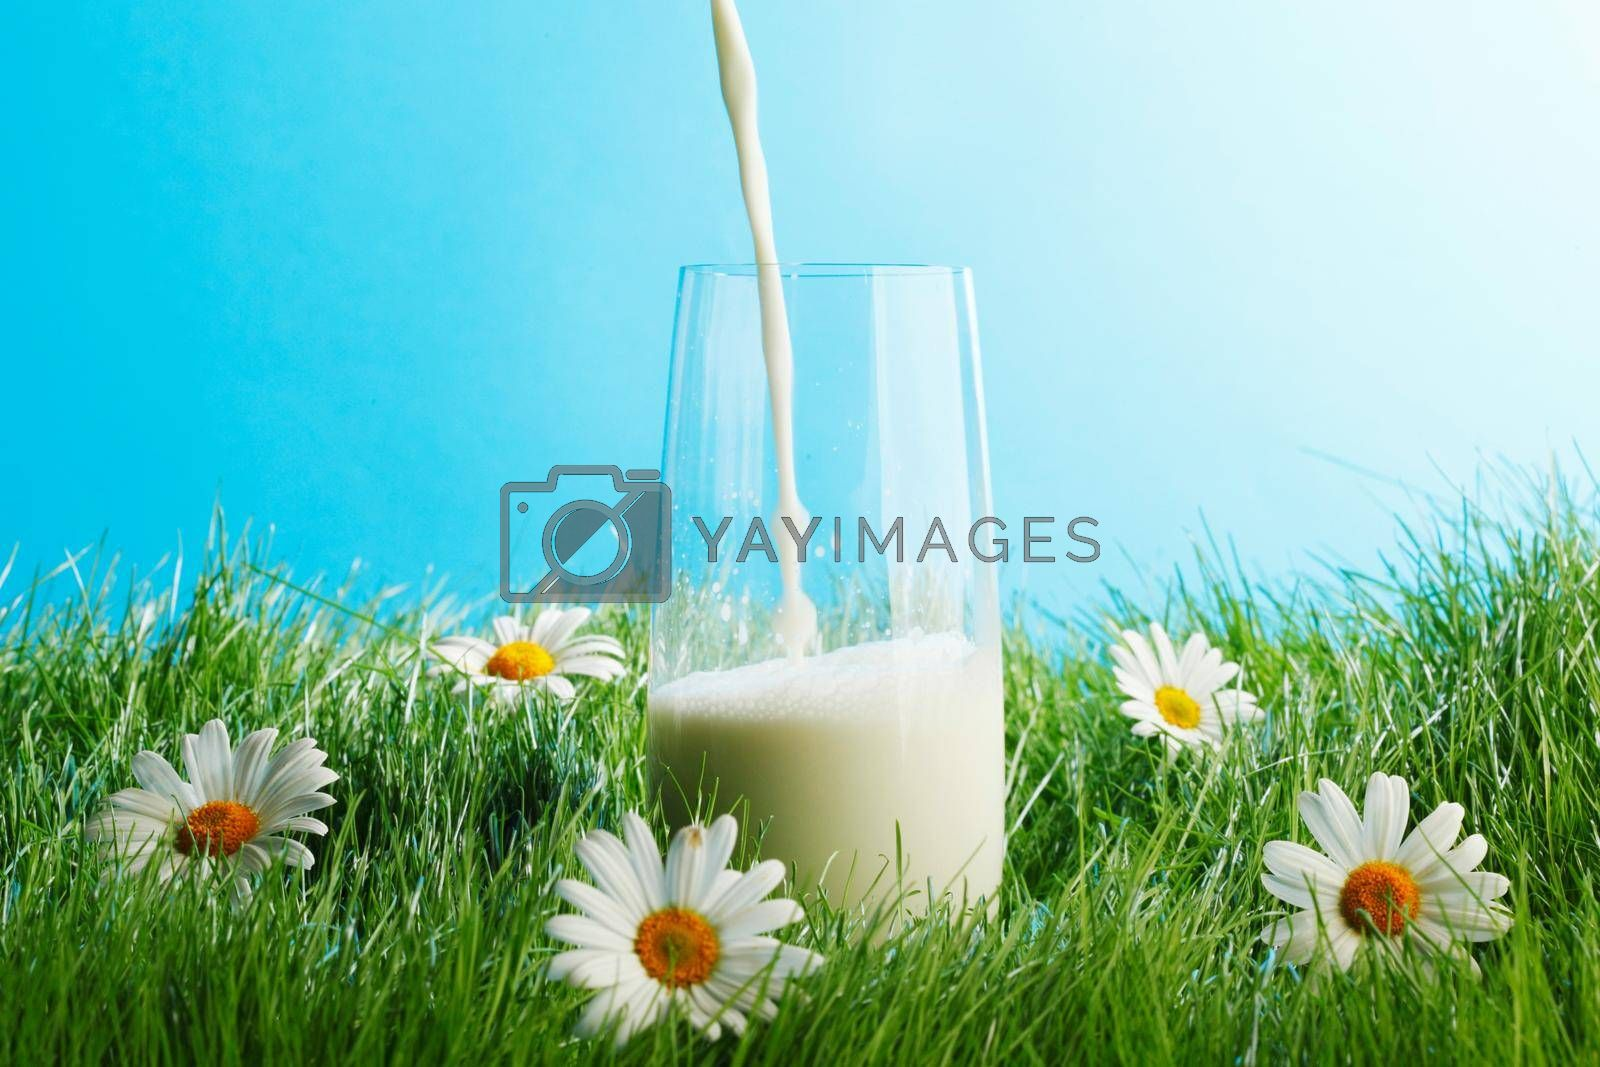 Royalty free image of Pouring milk in a glass by Yellowj